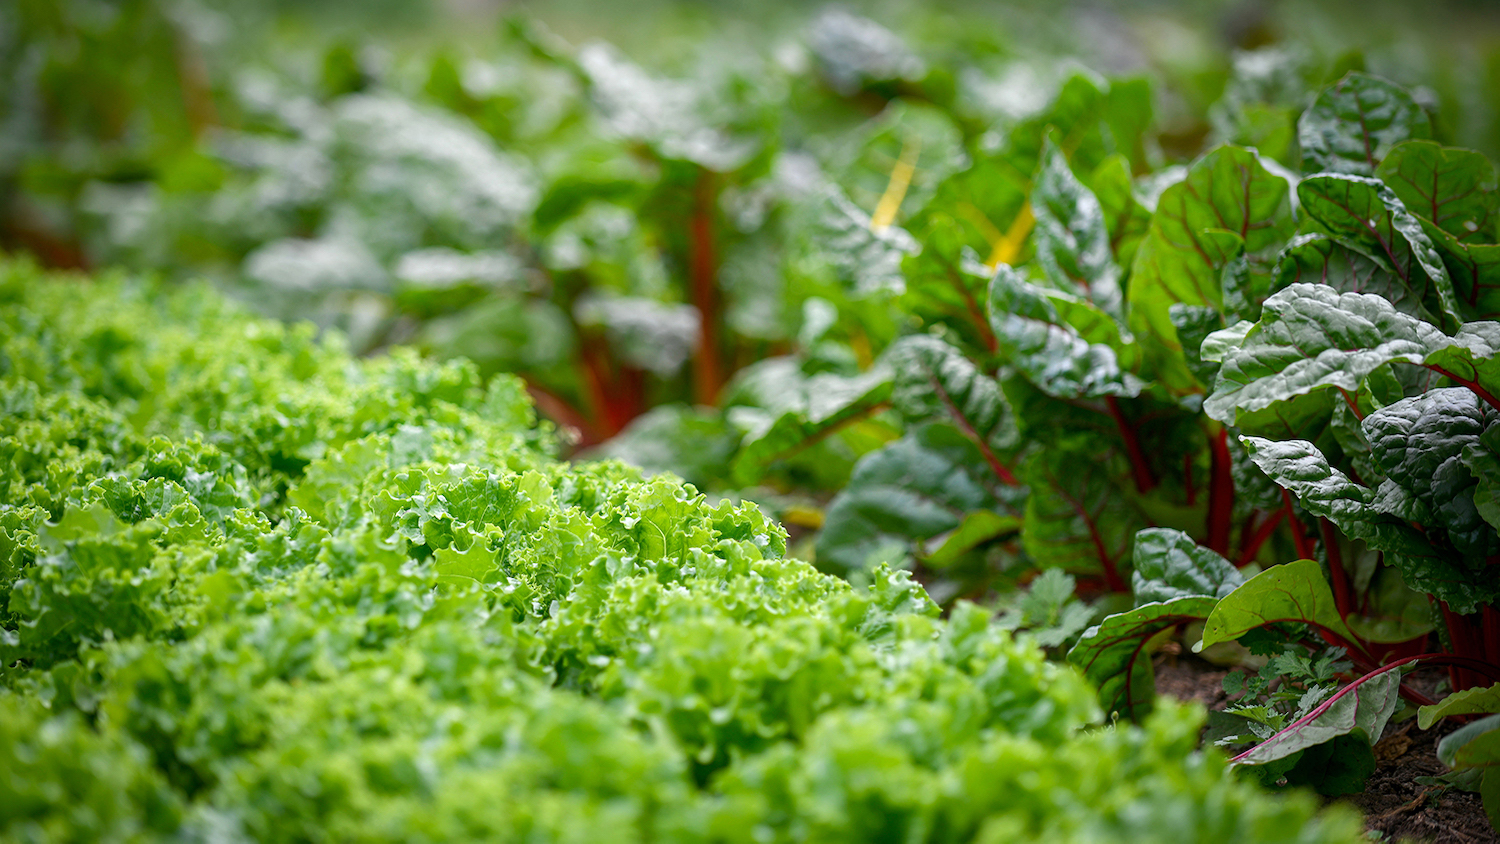 A field of leafy green vegetables - Building a Case for Community Gardens - College of Natural Resources News NC State University